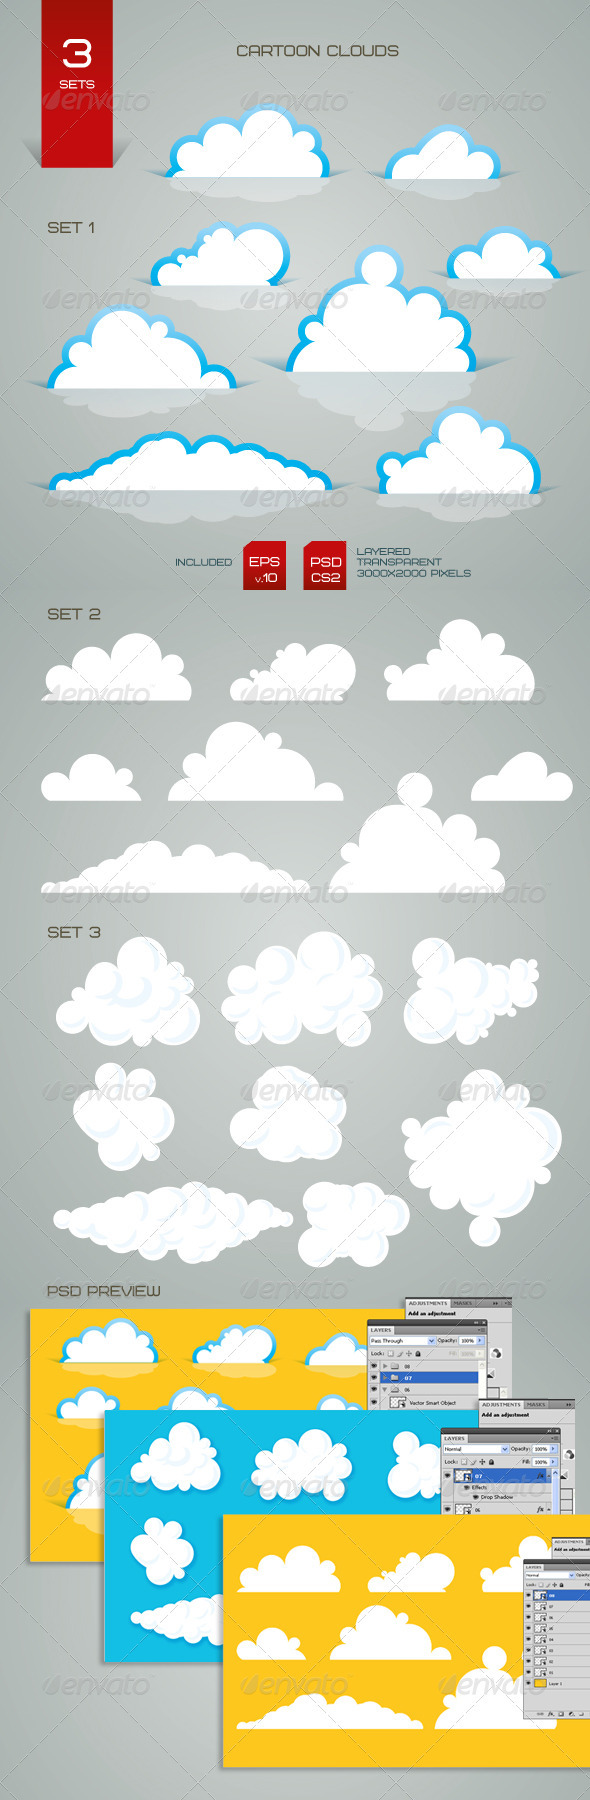 GraphicRiver Cartoon Clouds 1585989